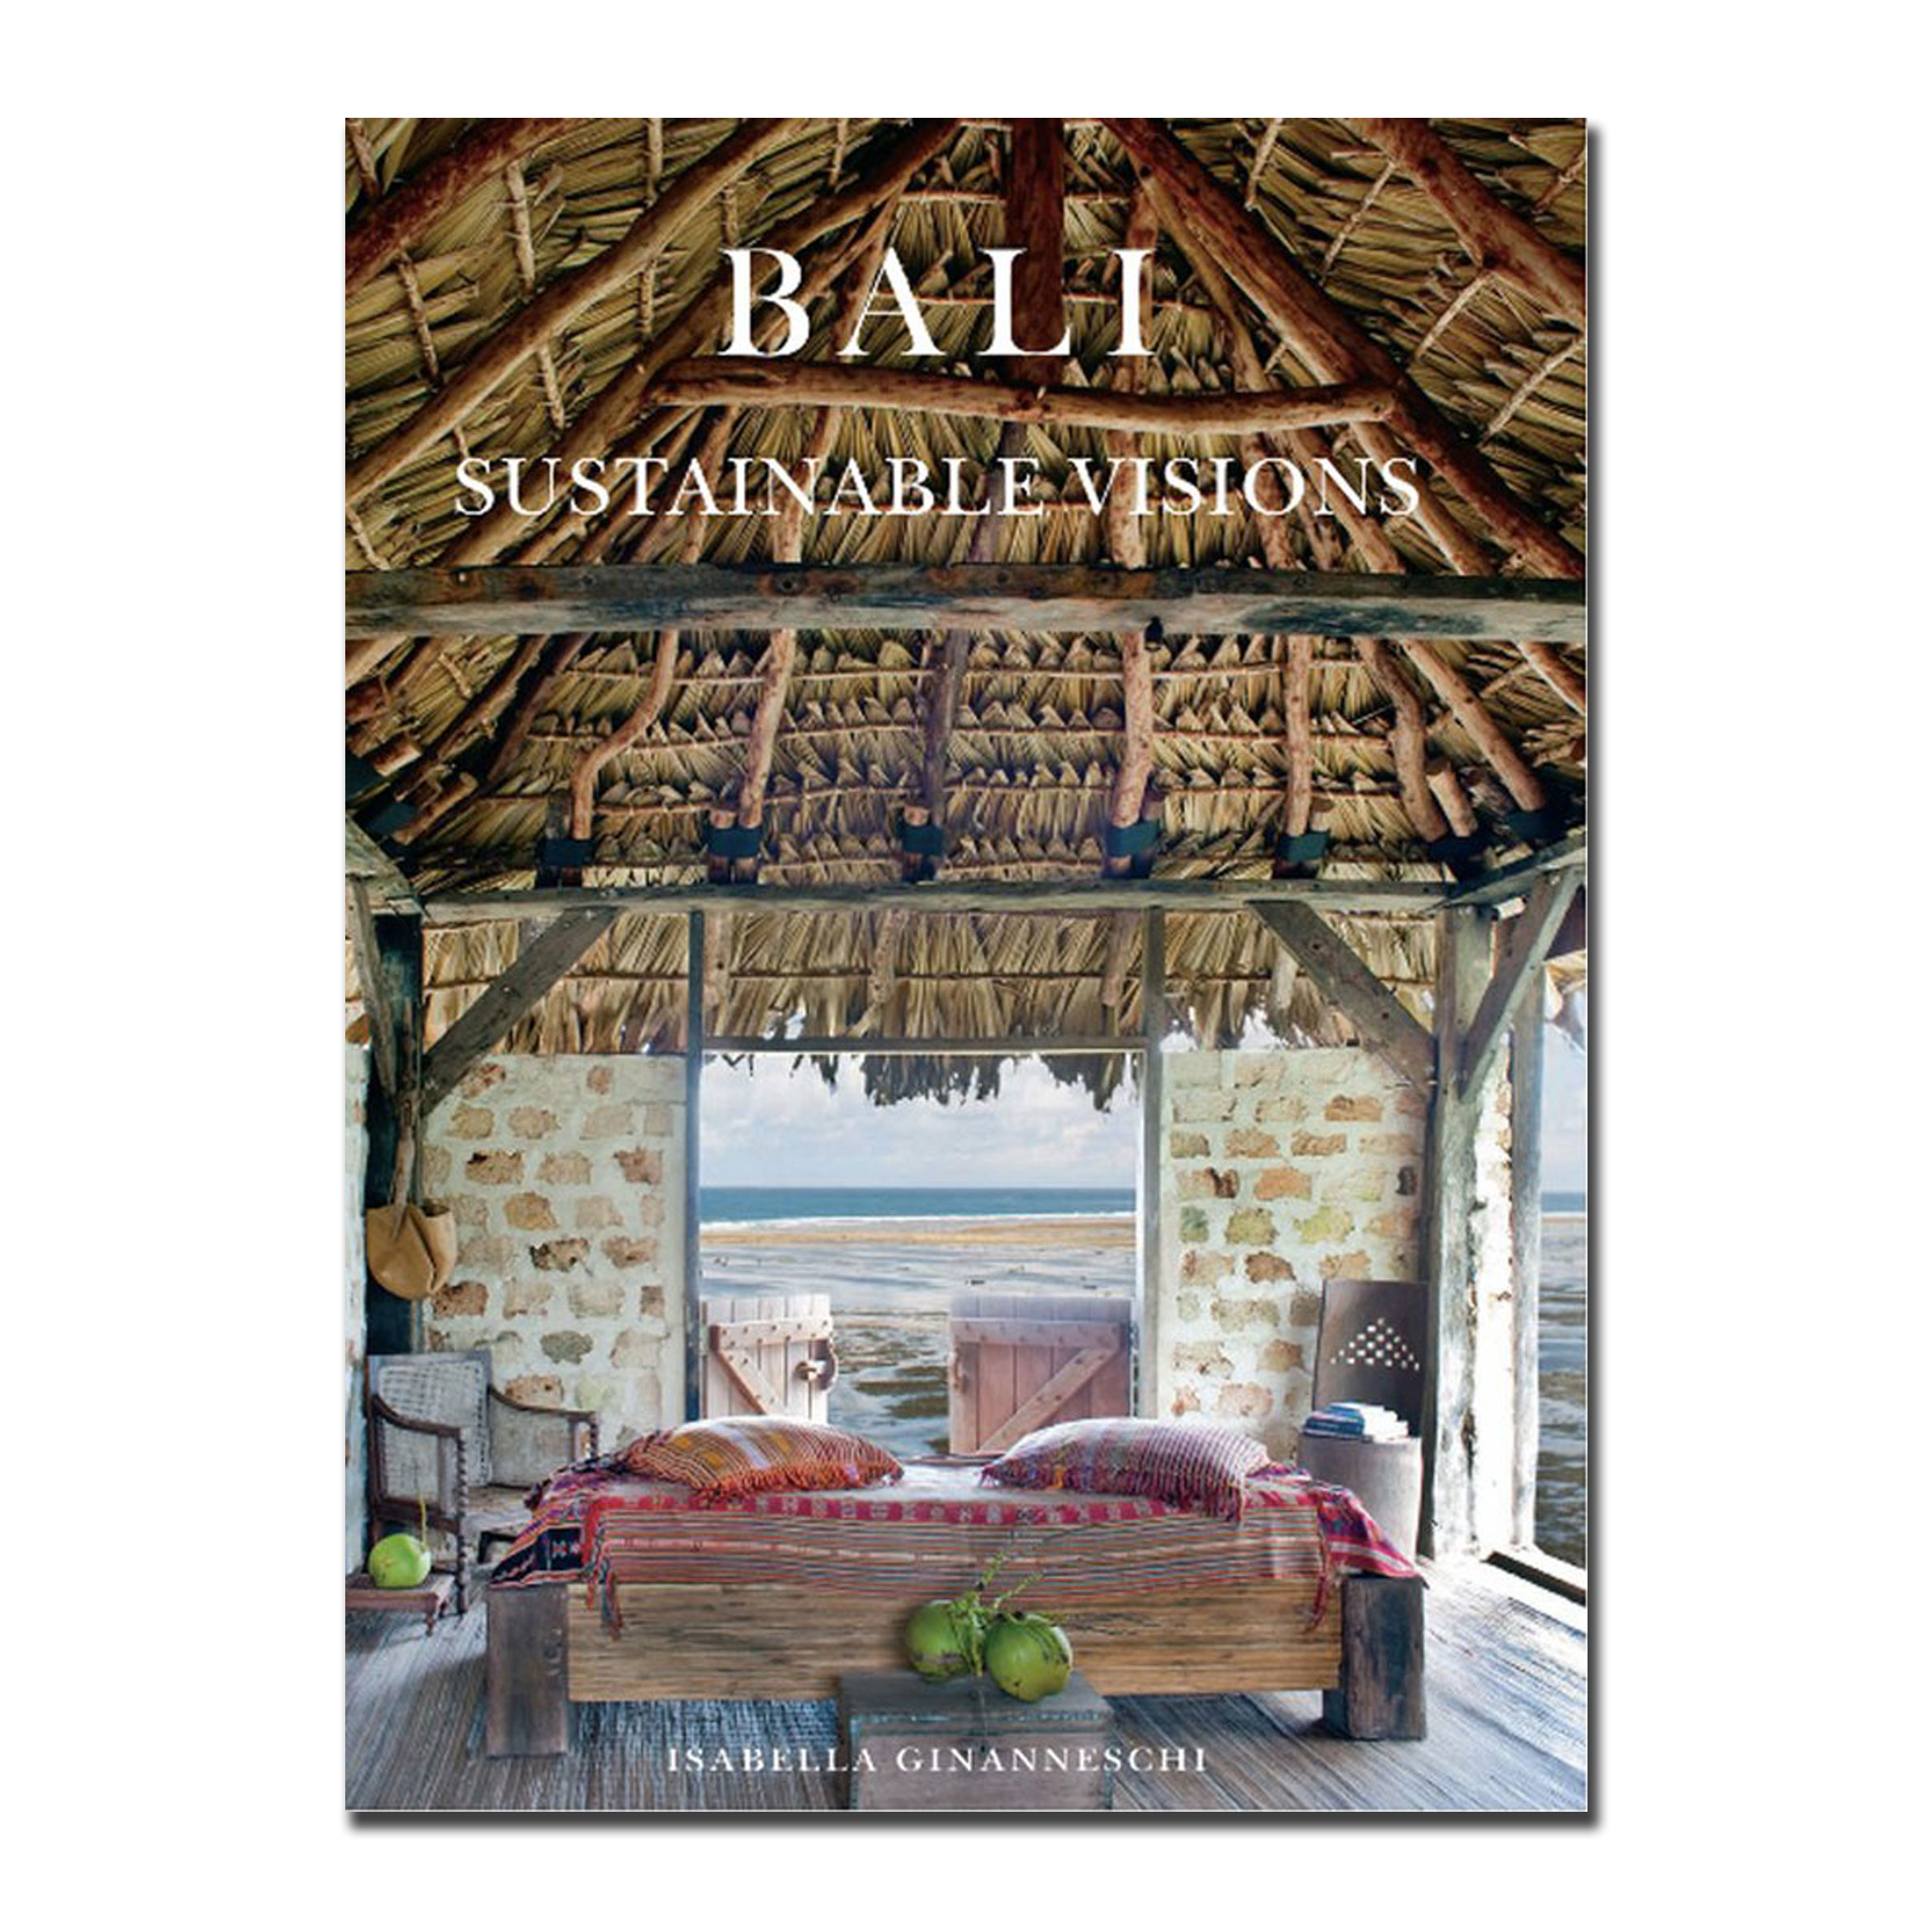 Bali-Sustainable-Visions-Book.jpg